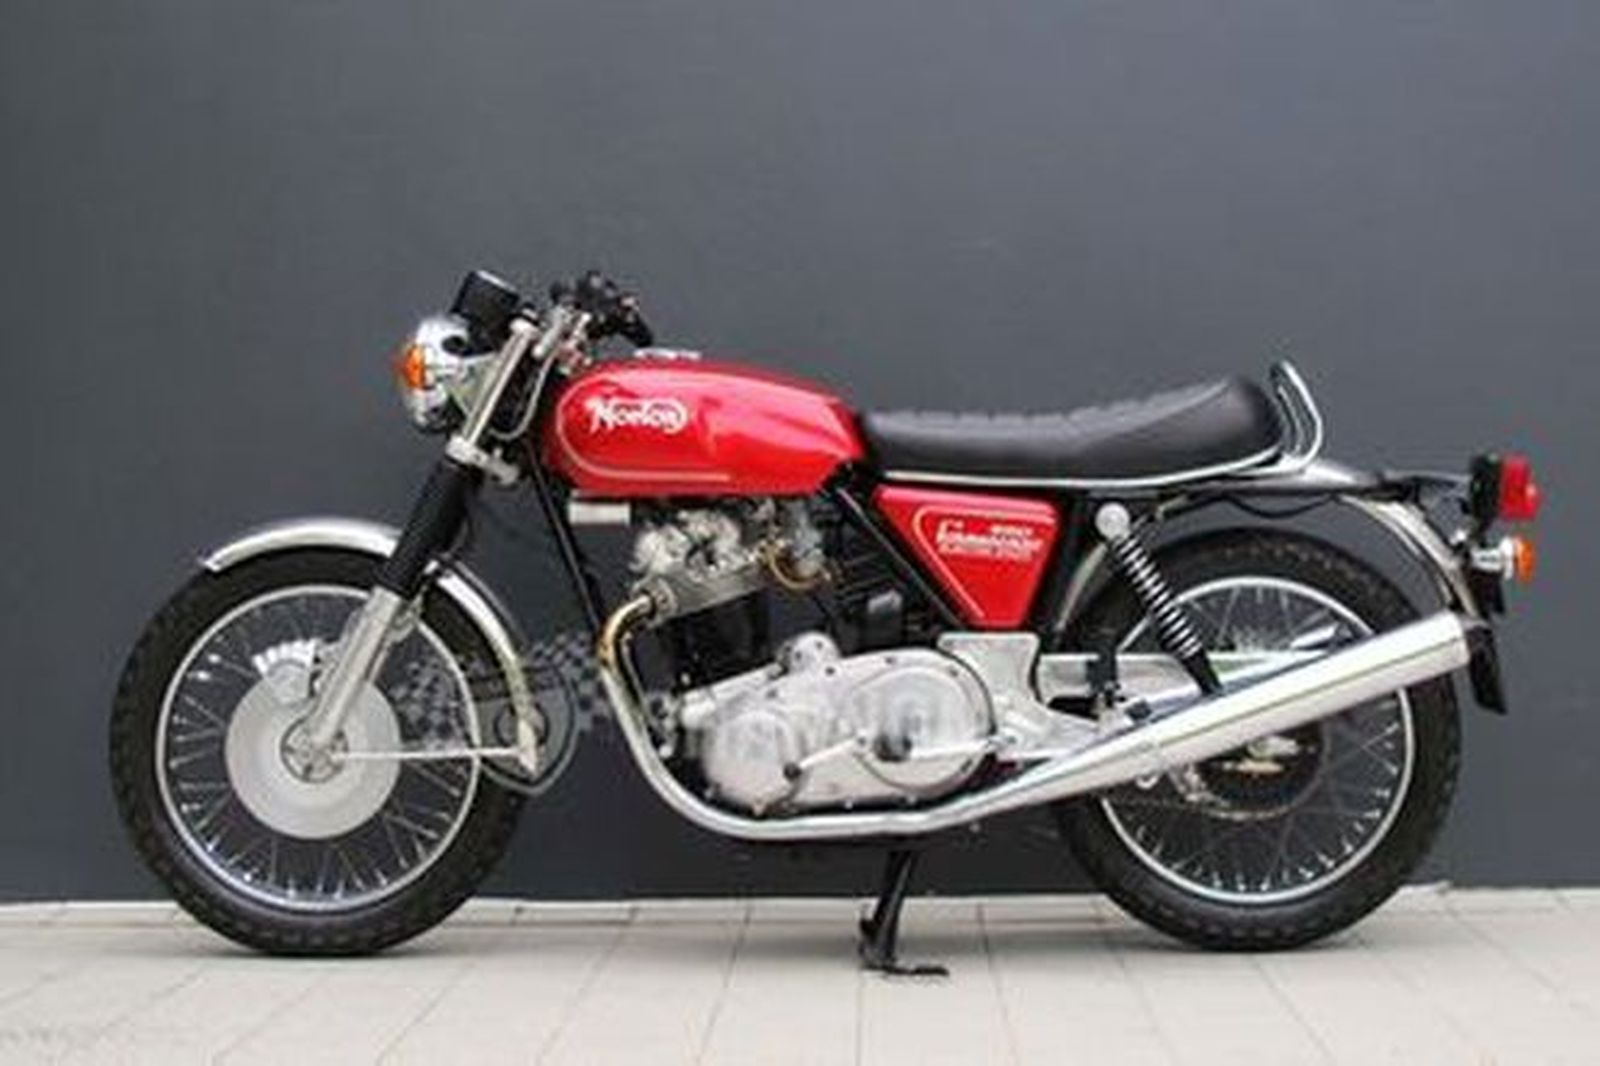 Sell My Motorcycle >> Sold: Norton Commando Mk3 850cc Motorcycle Auctions - Lot U - Shannons